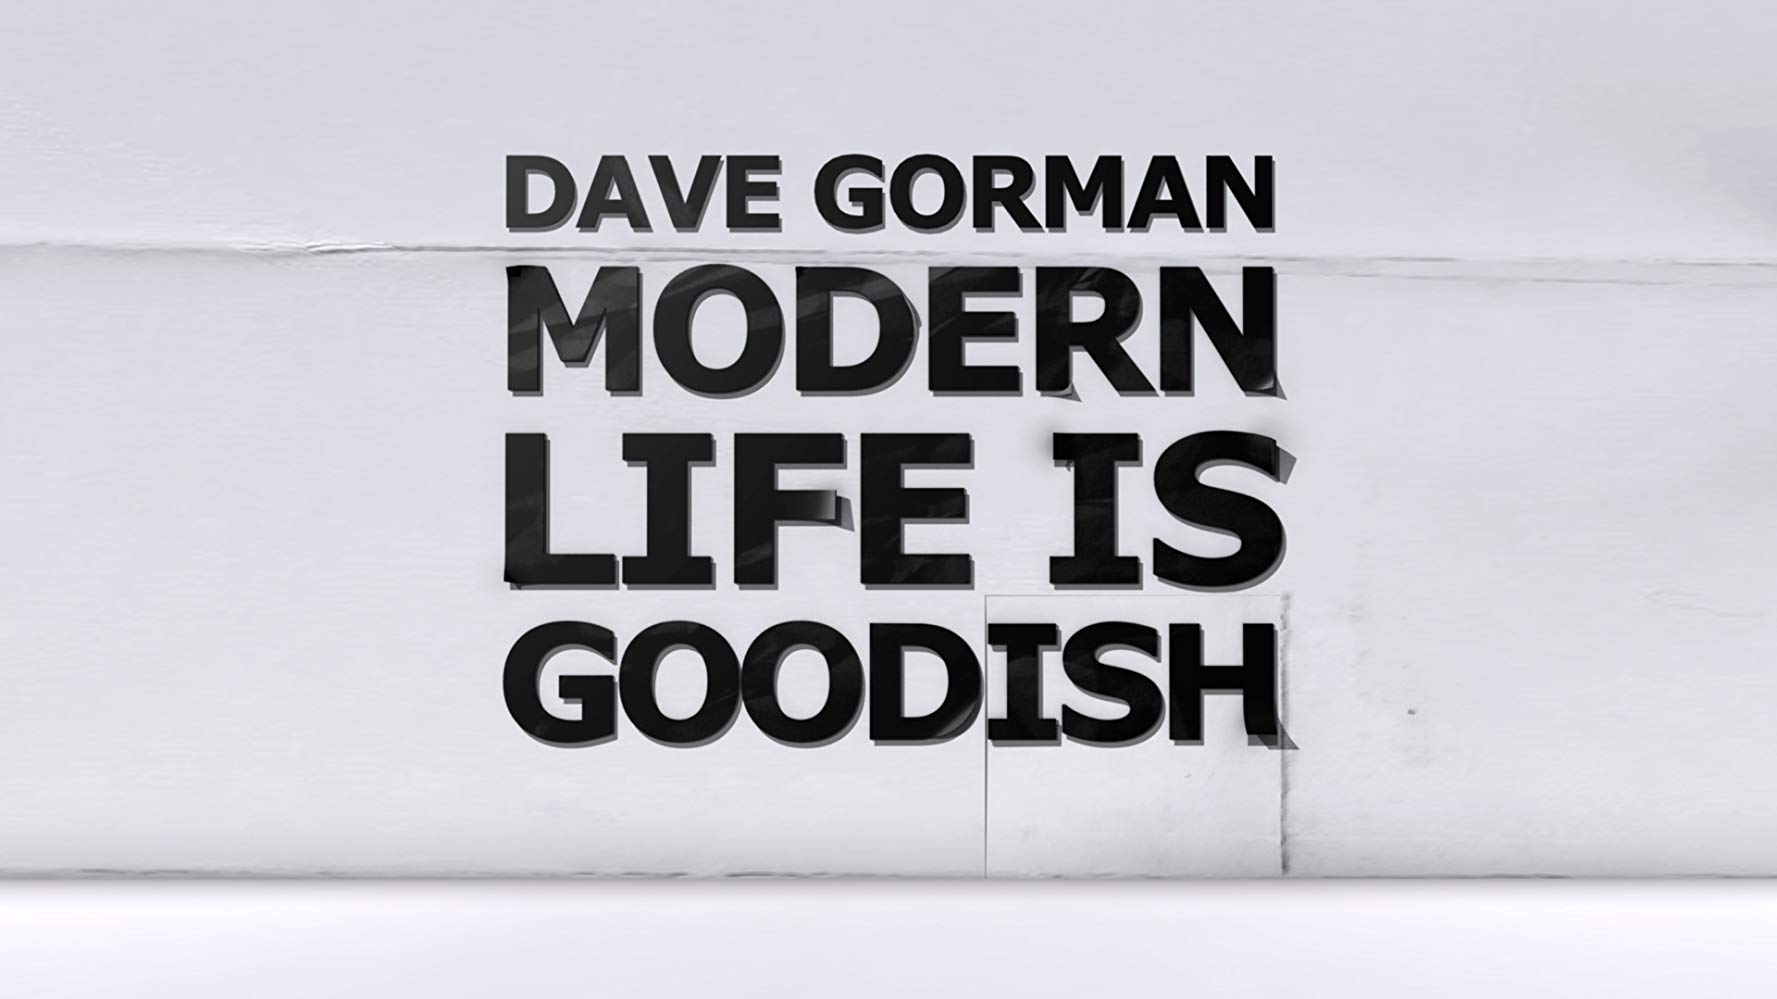 Dave Gorman: Modern Life is Goodish